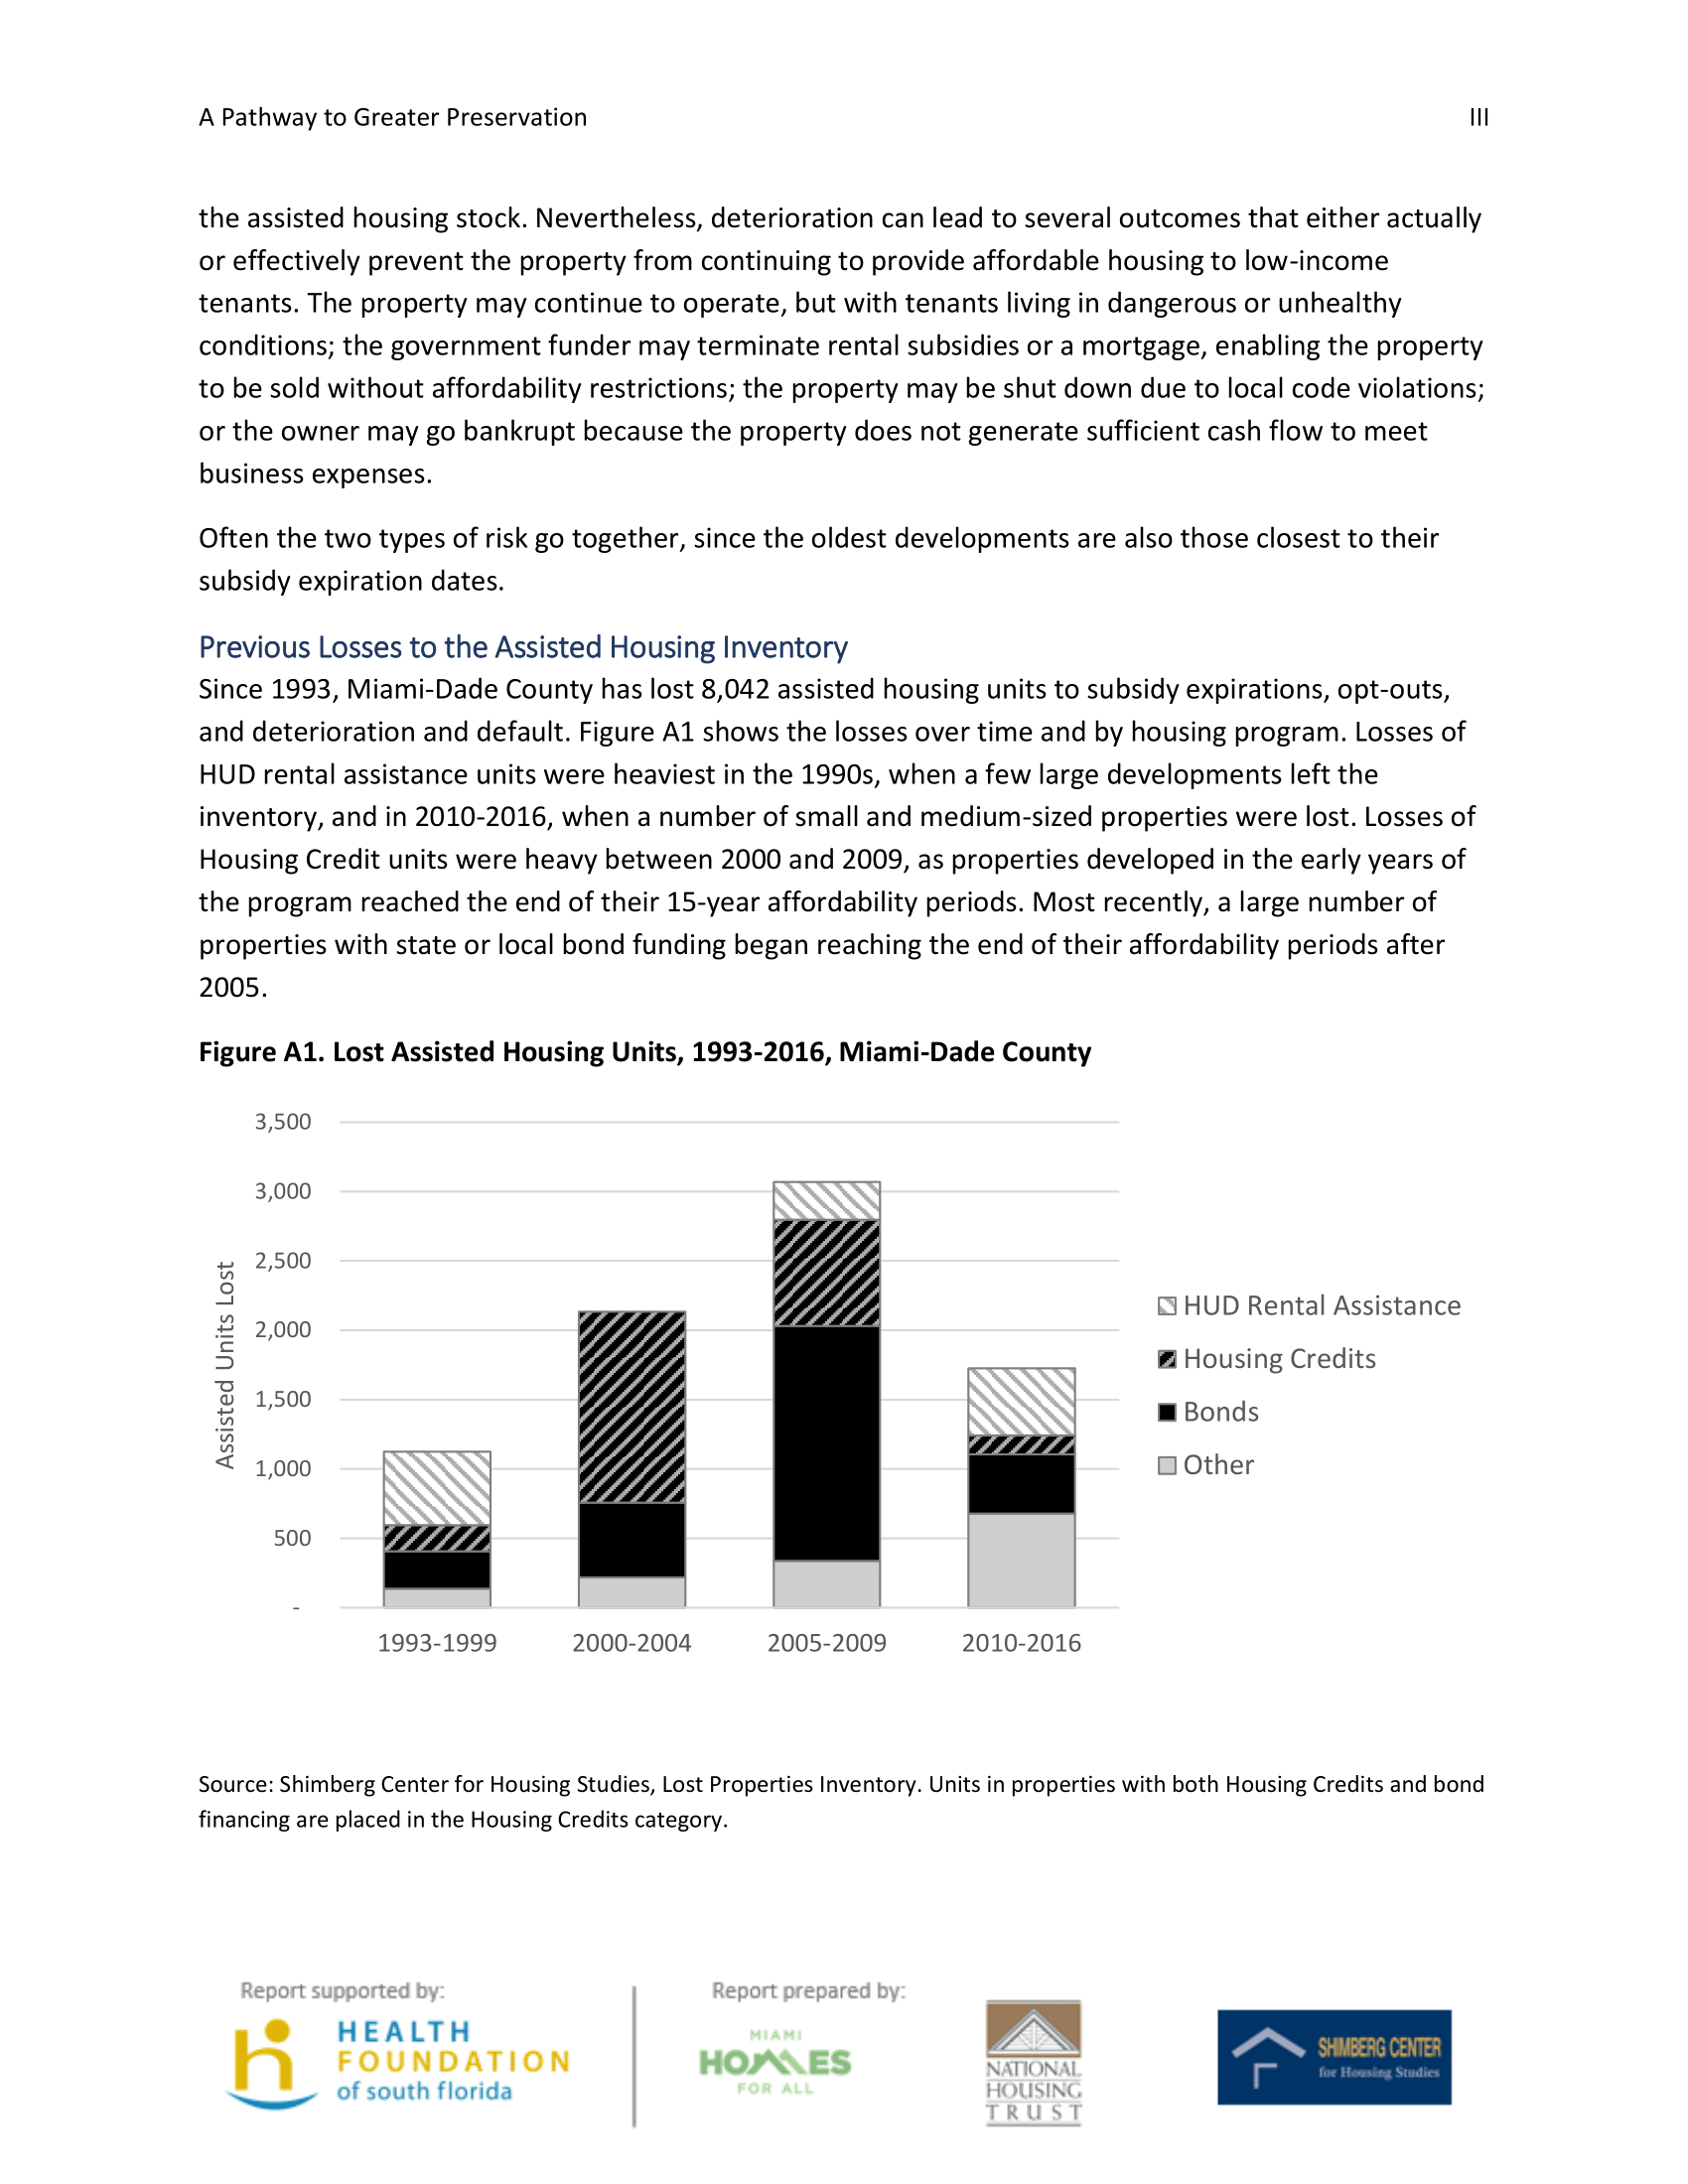 A Pathway to Greater Preservation - February 2018-49.png